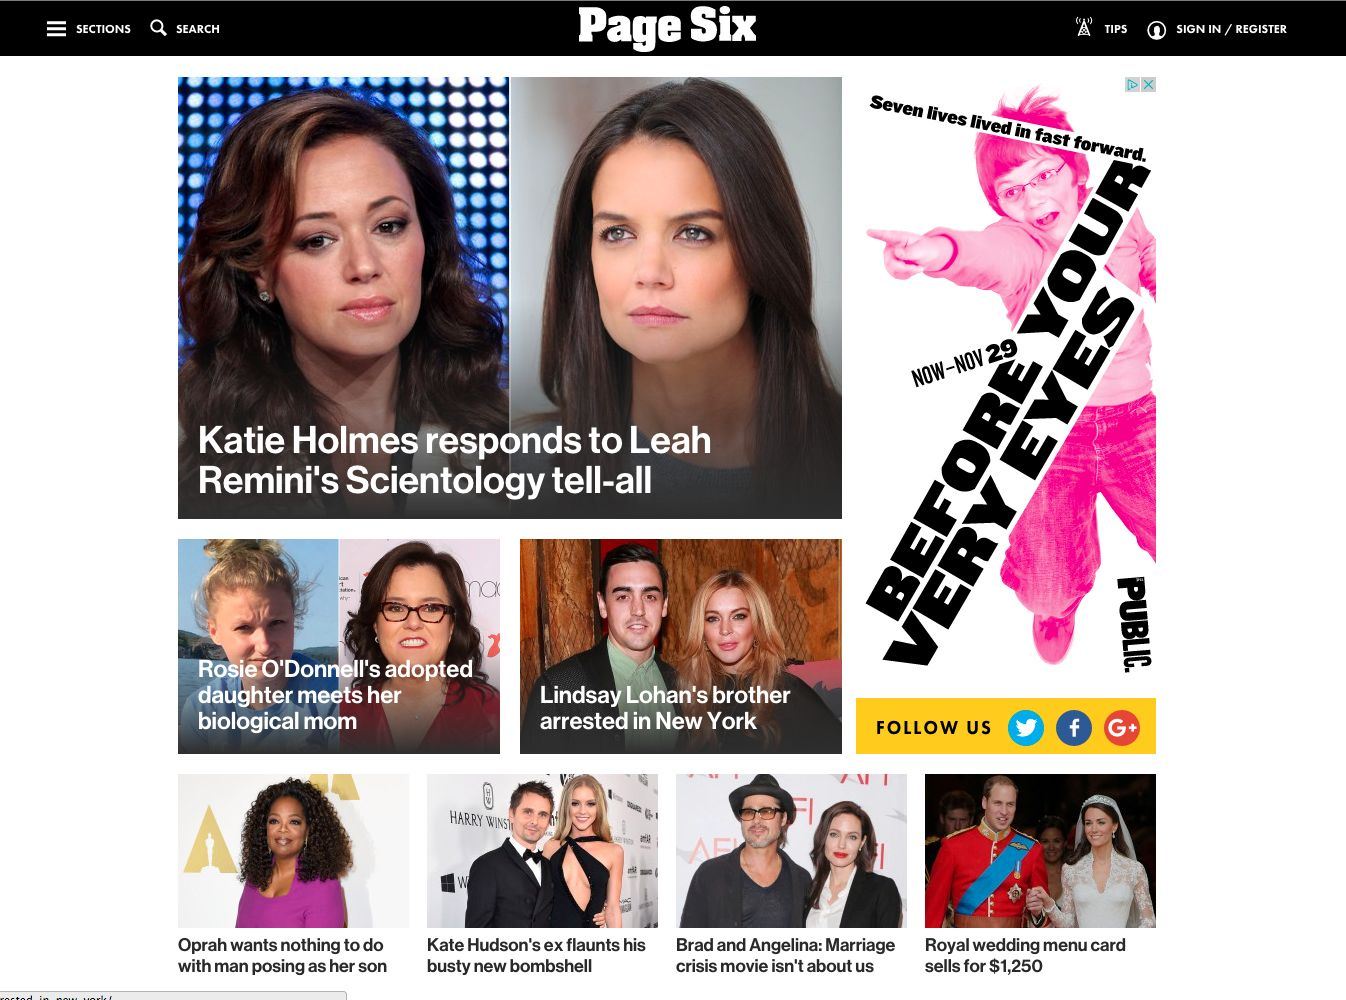 screen shot of the page six section of the new york post featuring pop culture news stories with large featured images and titles